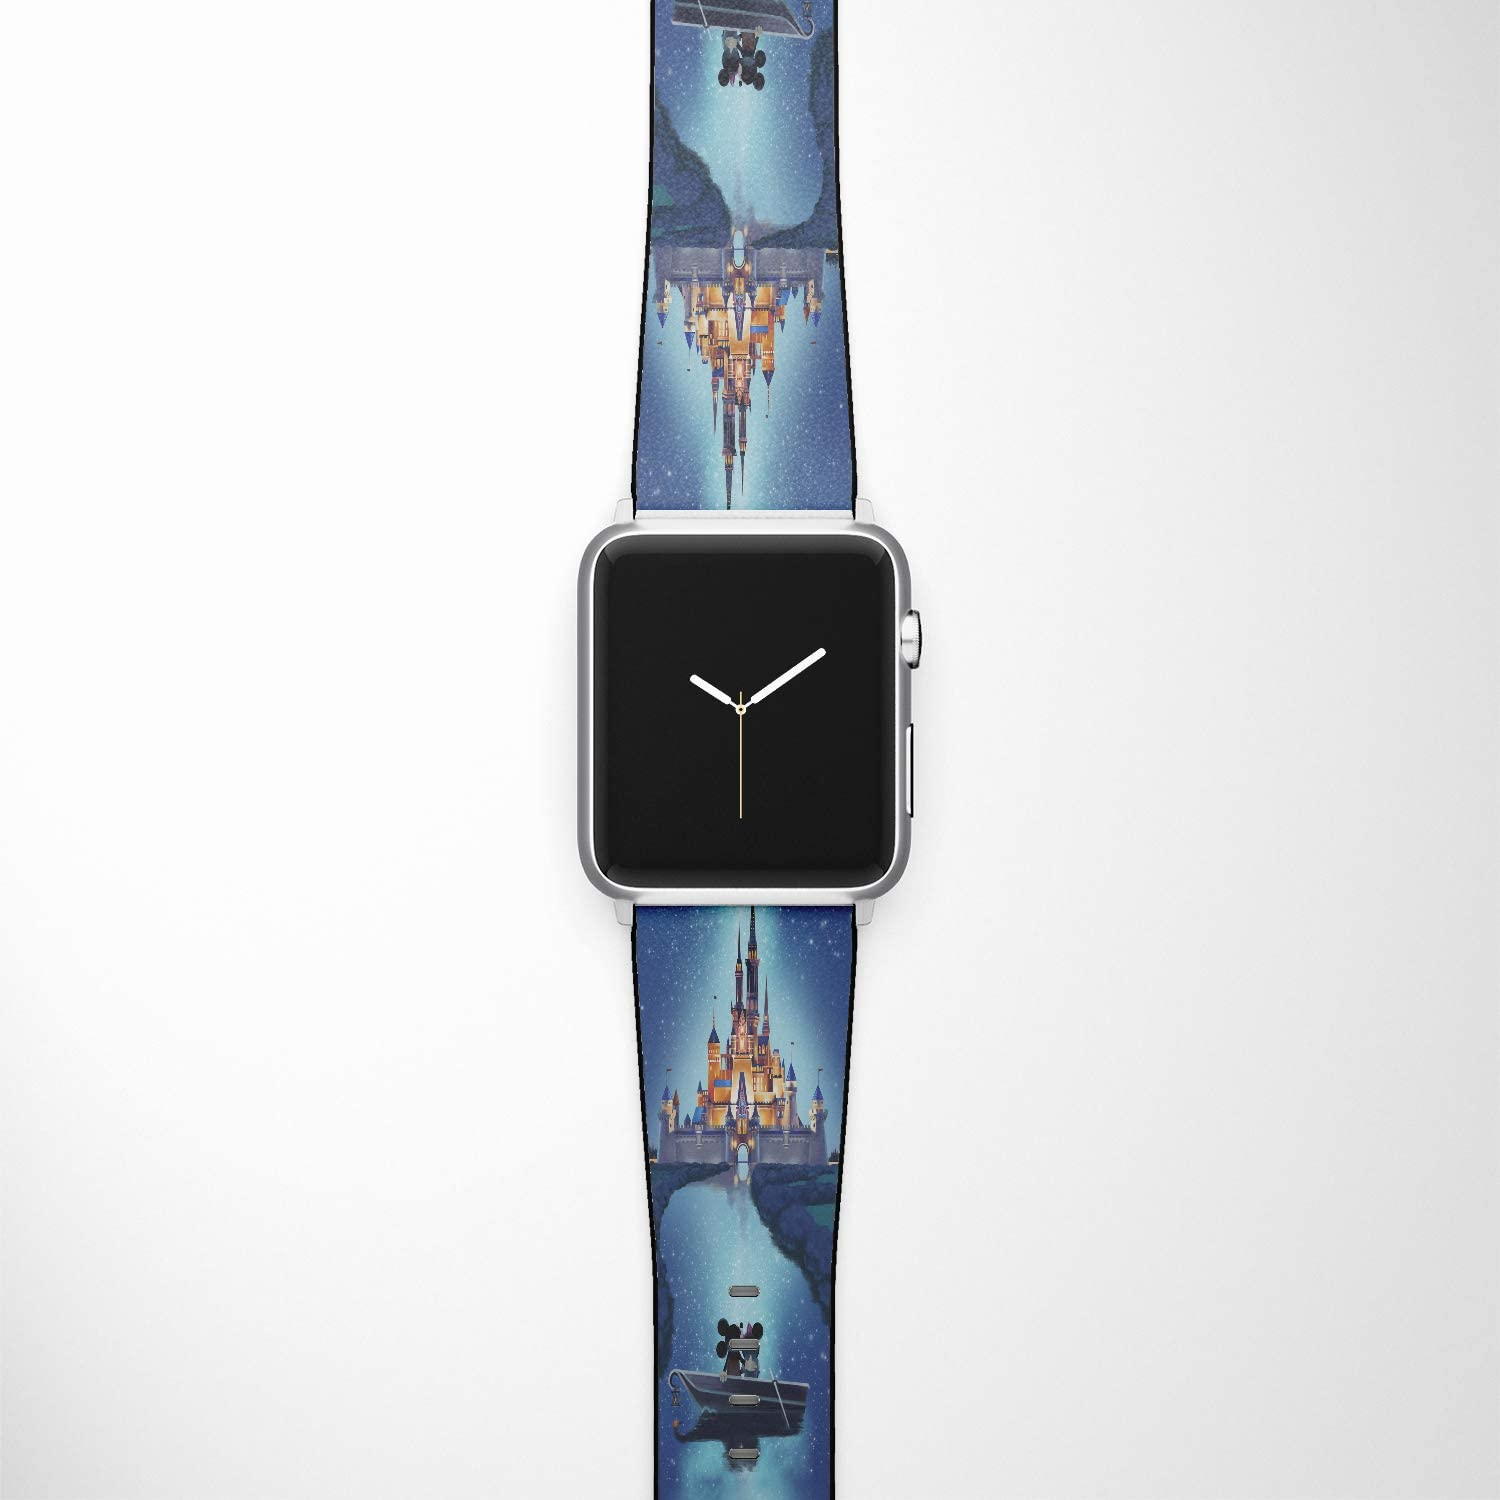 Watch Band Compatible with Apple iWatch All Series 38mm 40mm 42mm 44mm Cartoon Design Strap (dis4) (38/40mm)